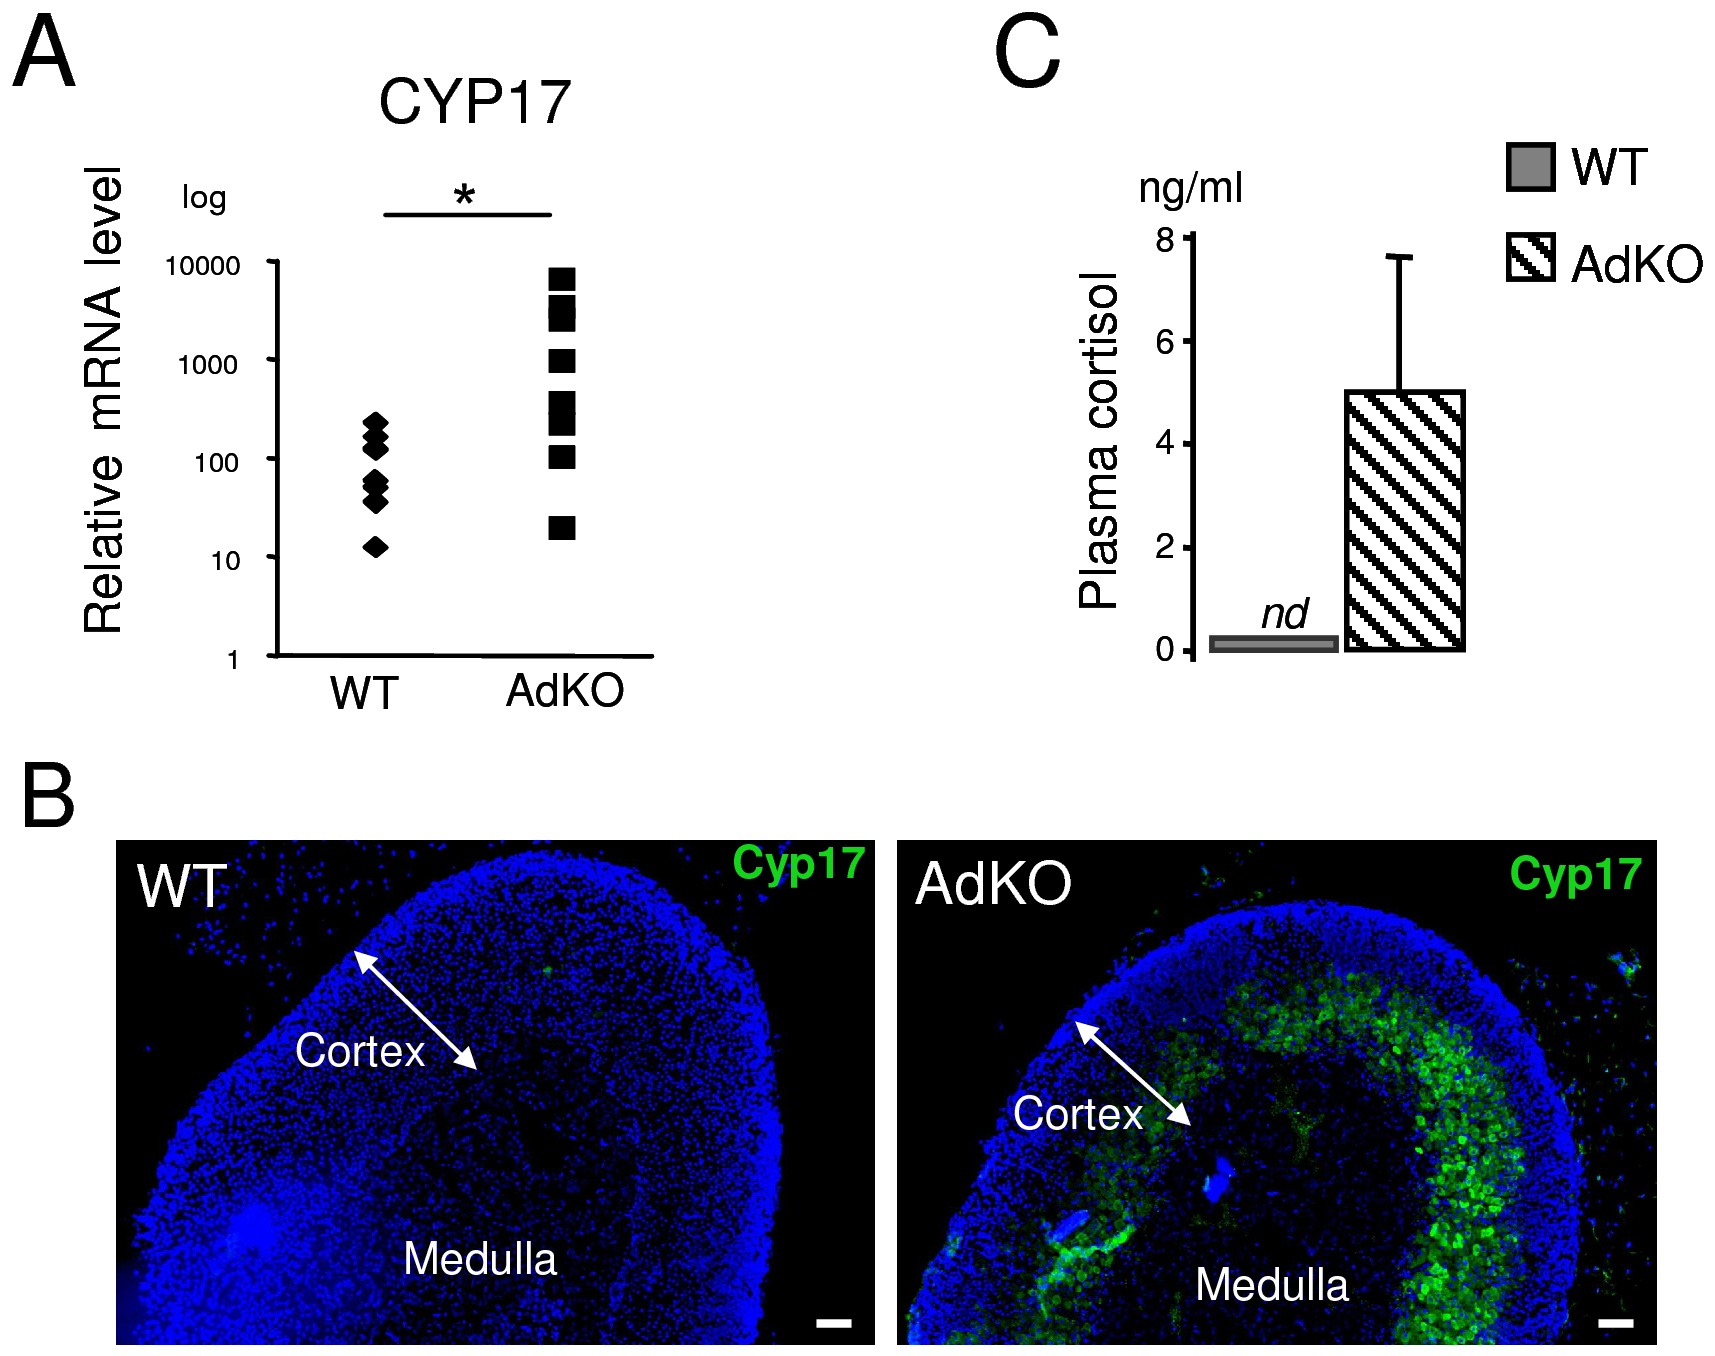 AdKO adrenals expressed Cyp17 and produced cortisol.